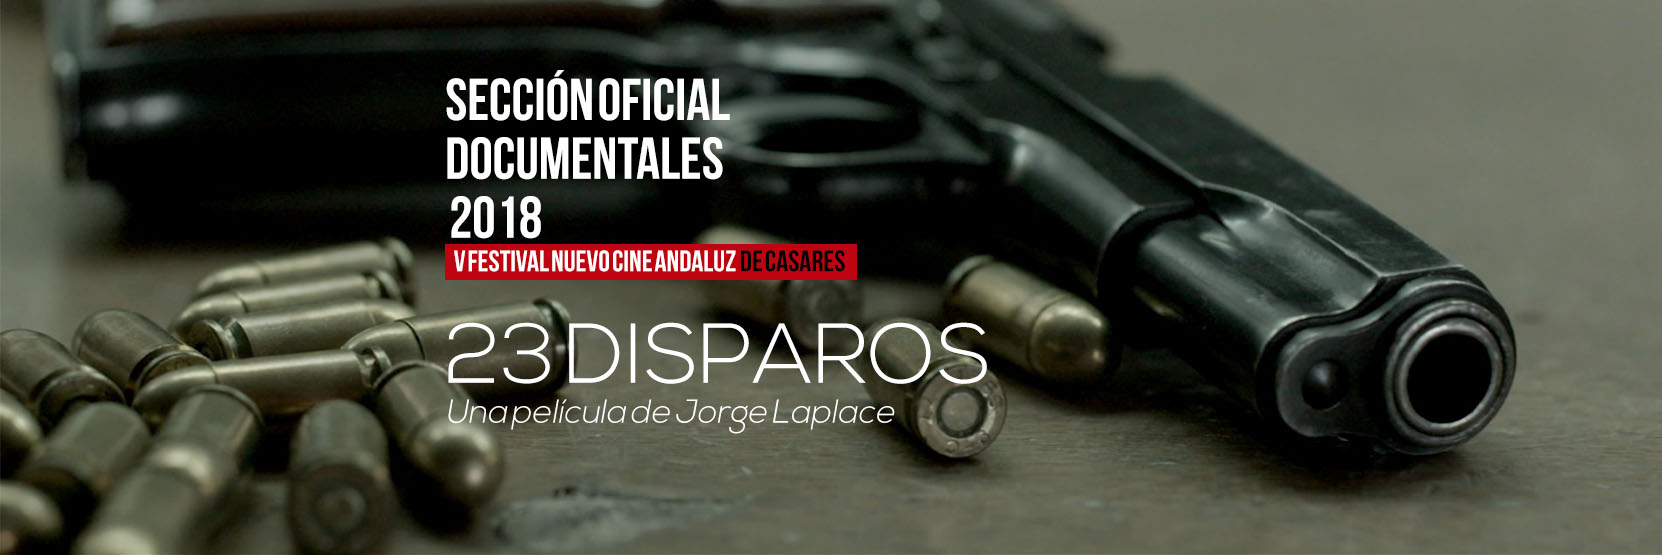 23 disparos, de Jorge Laplace